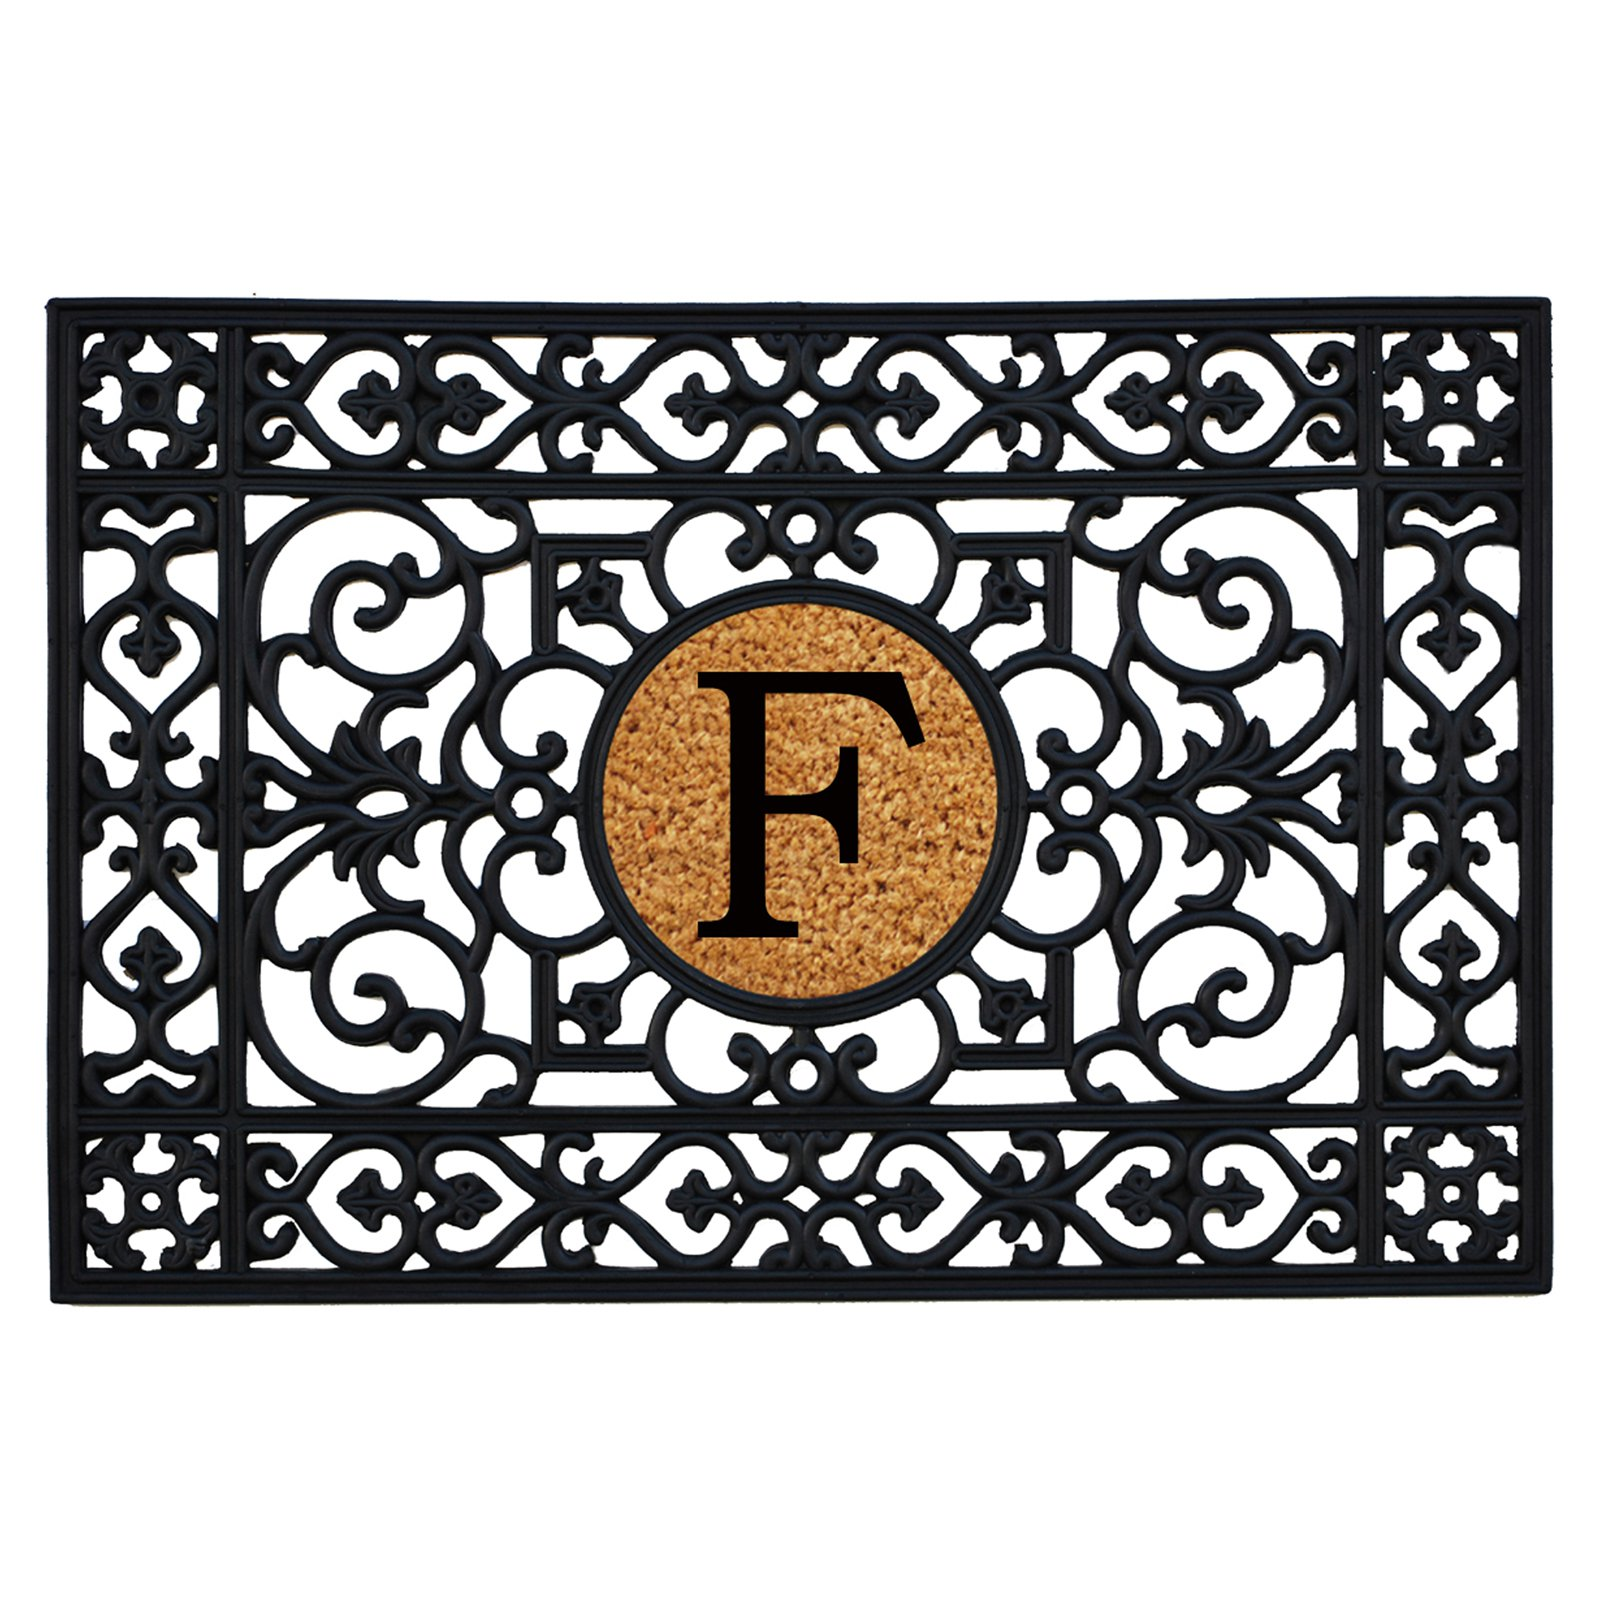 Home & More Rubber Monogram Doormat - 24 x 36 in.